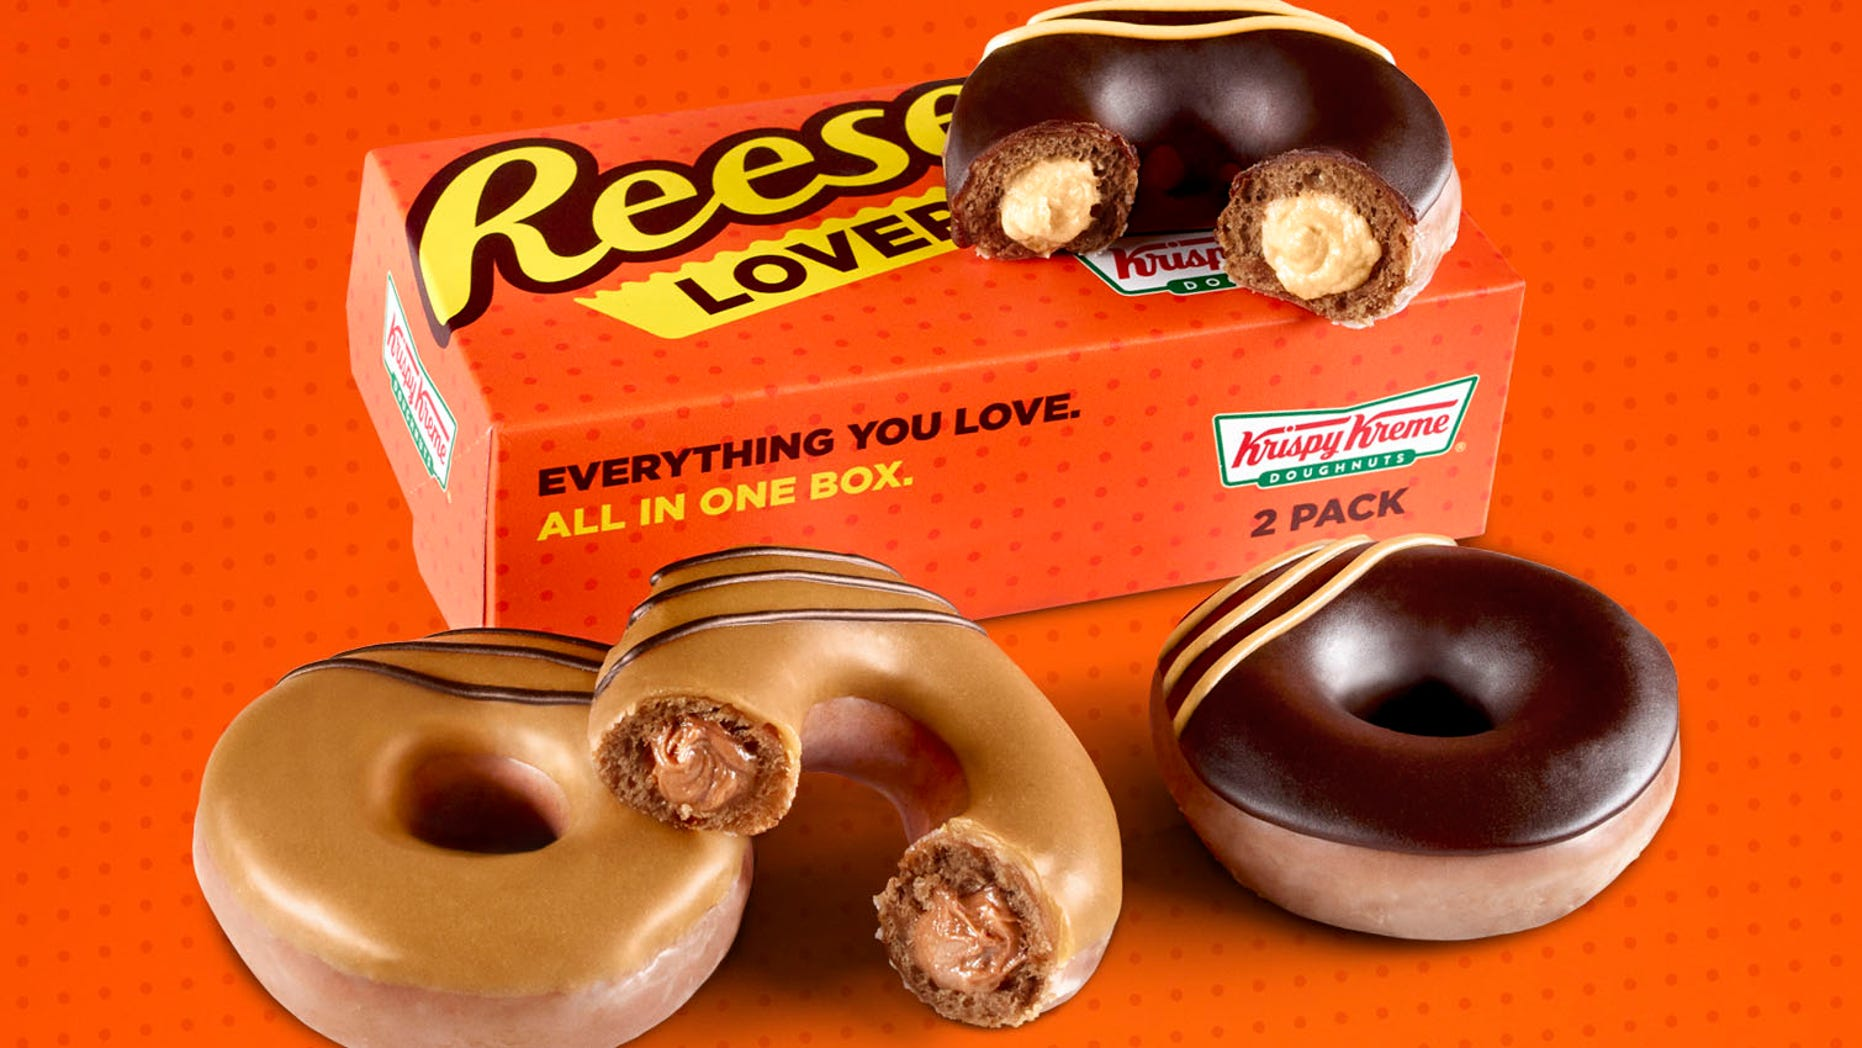 Krispy Kreme will sell the Reese's doughnuts in two packs, inspired by the classic Reese's Peanut Butter Cups two packs.